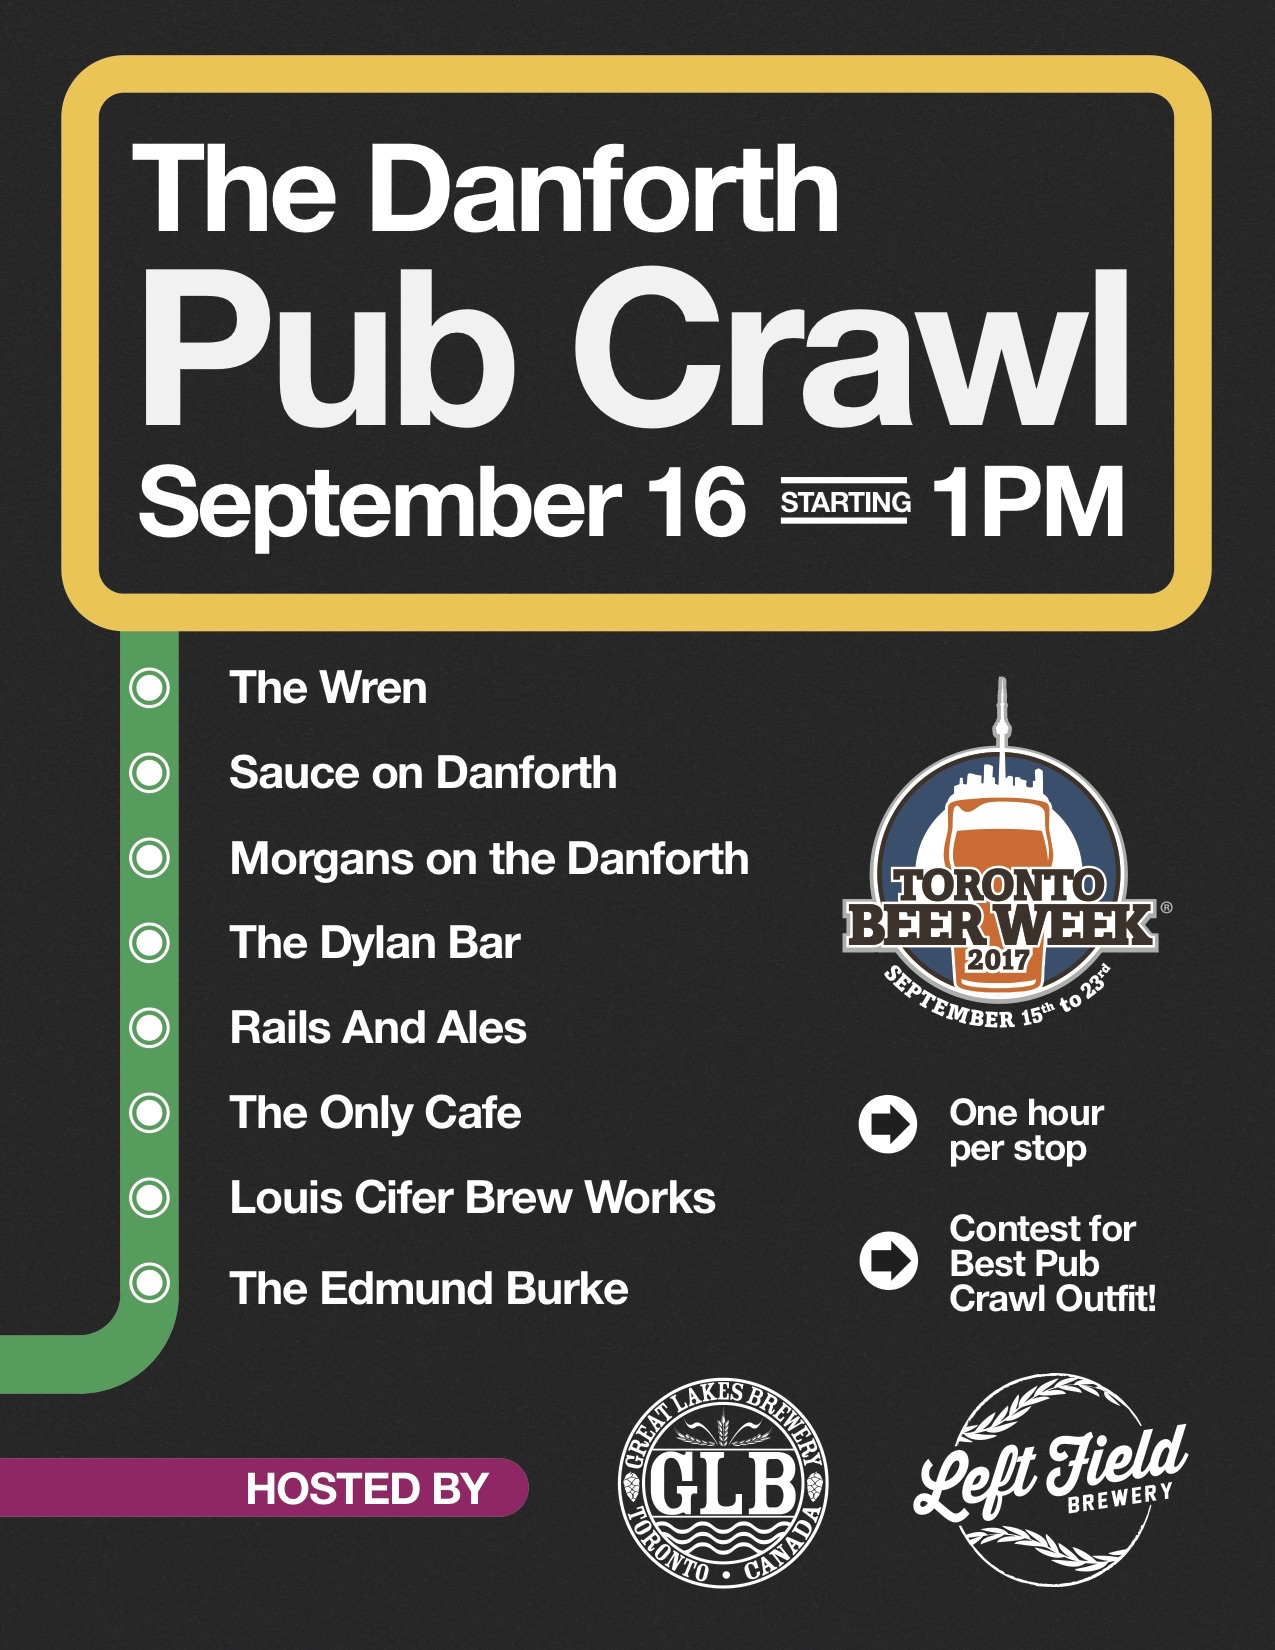 TBW2017_GLB_LF_Danforth Pub Crawl Poster